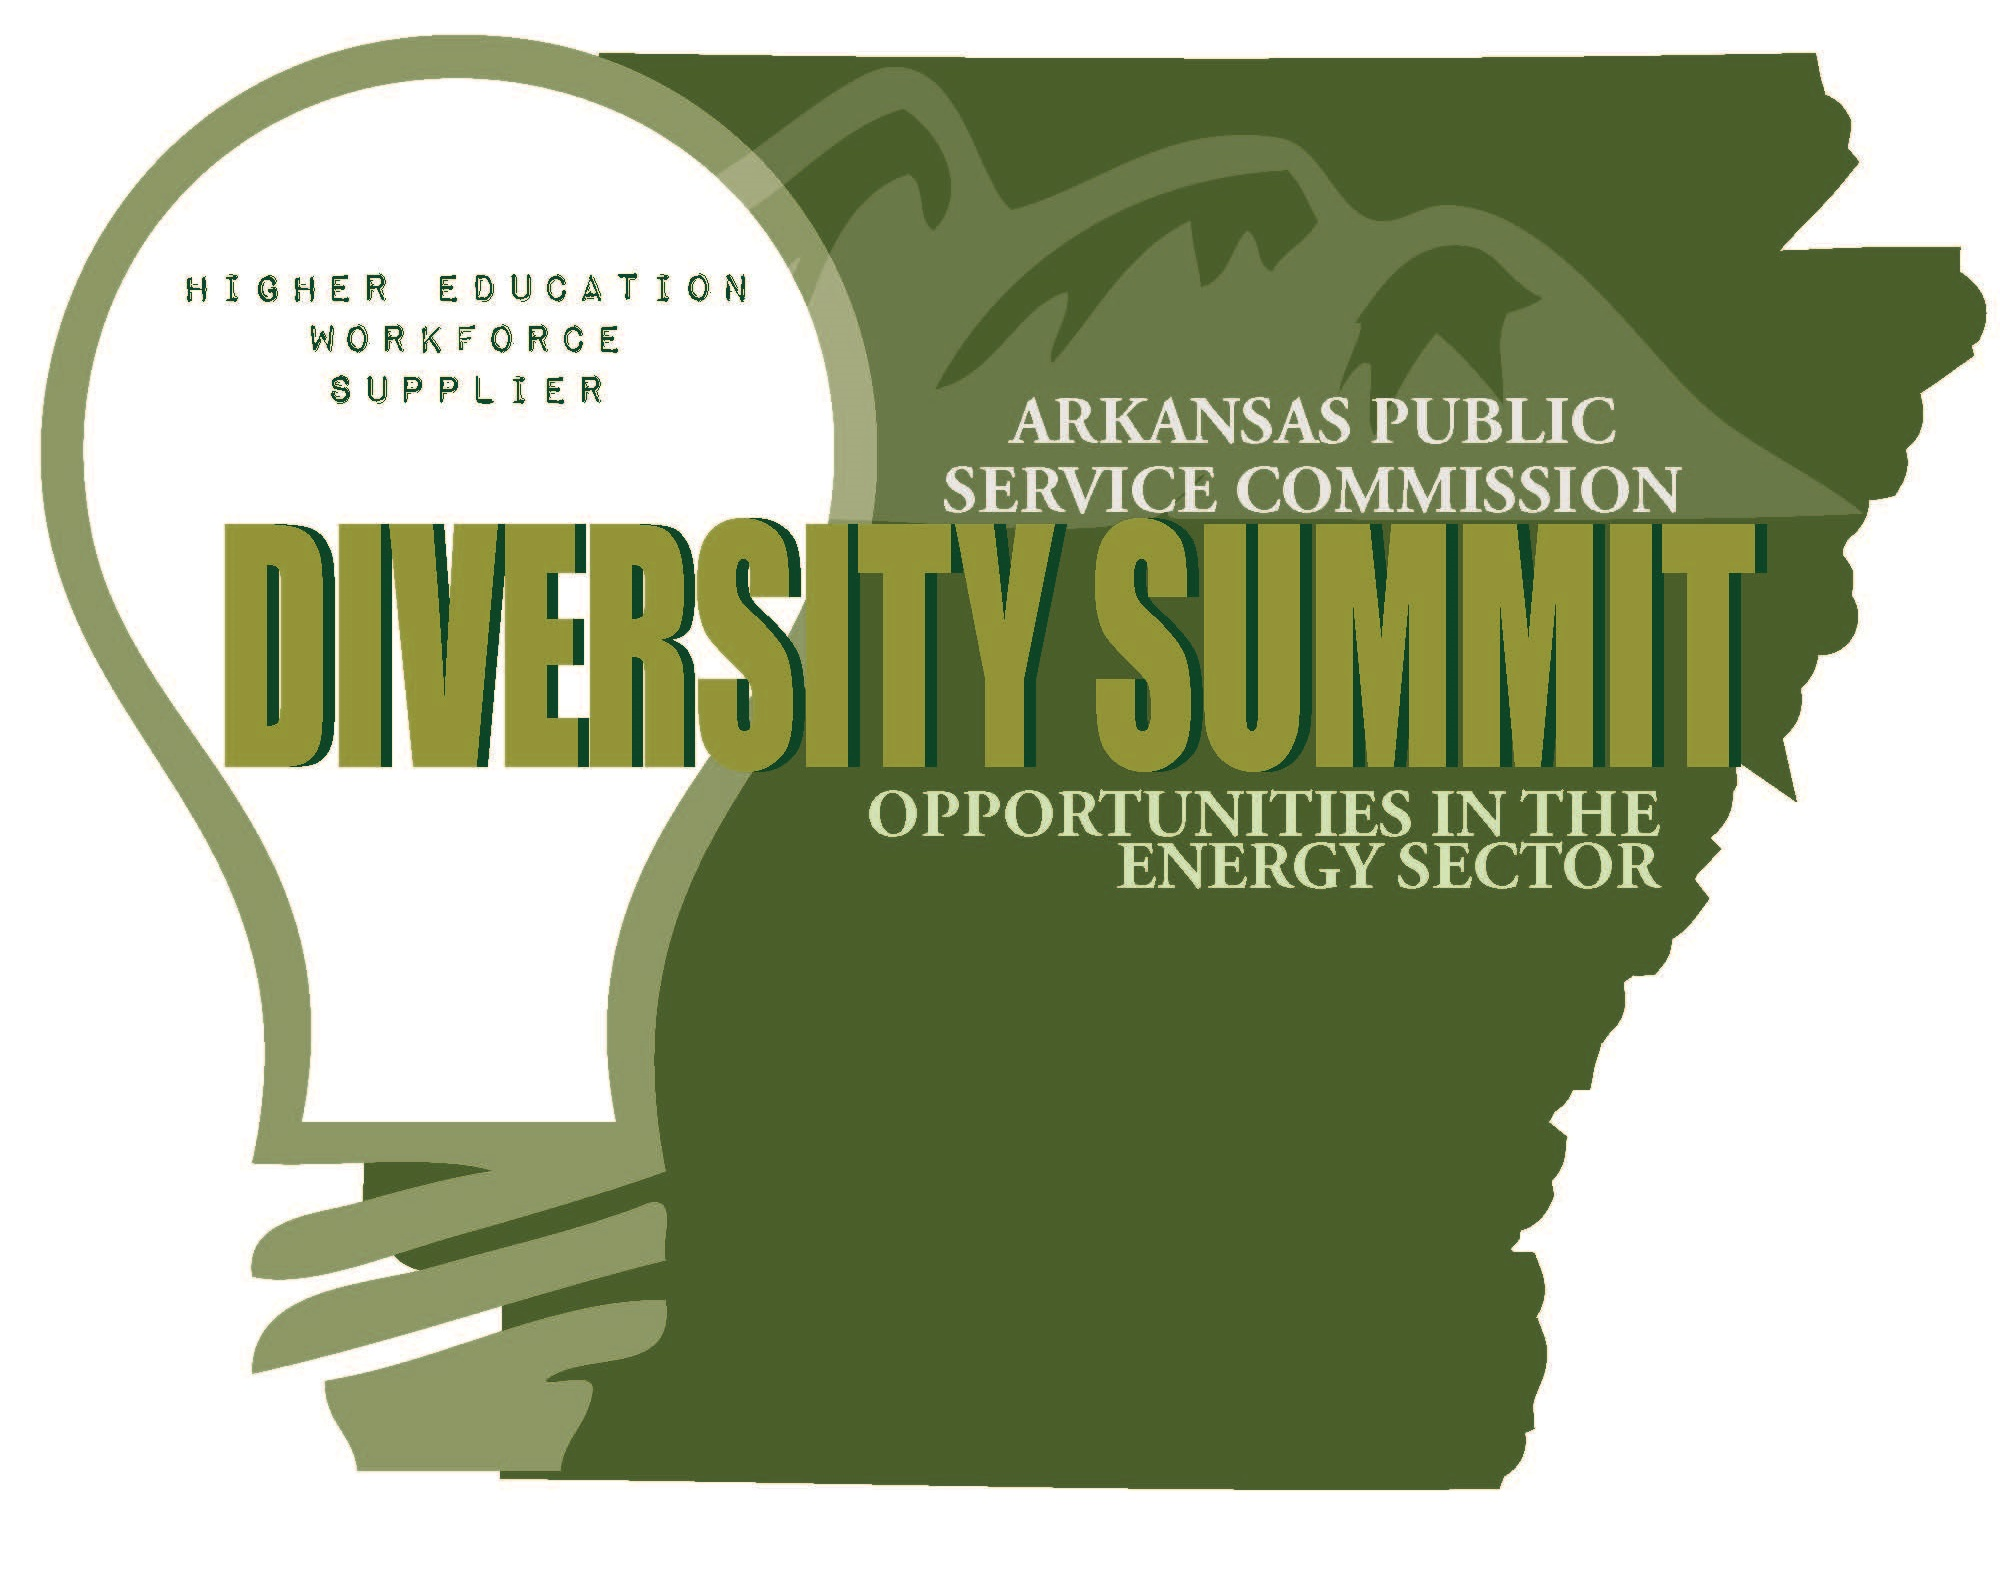 Image for link to Diversity Summit